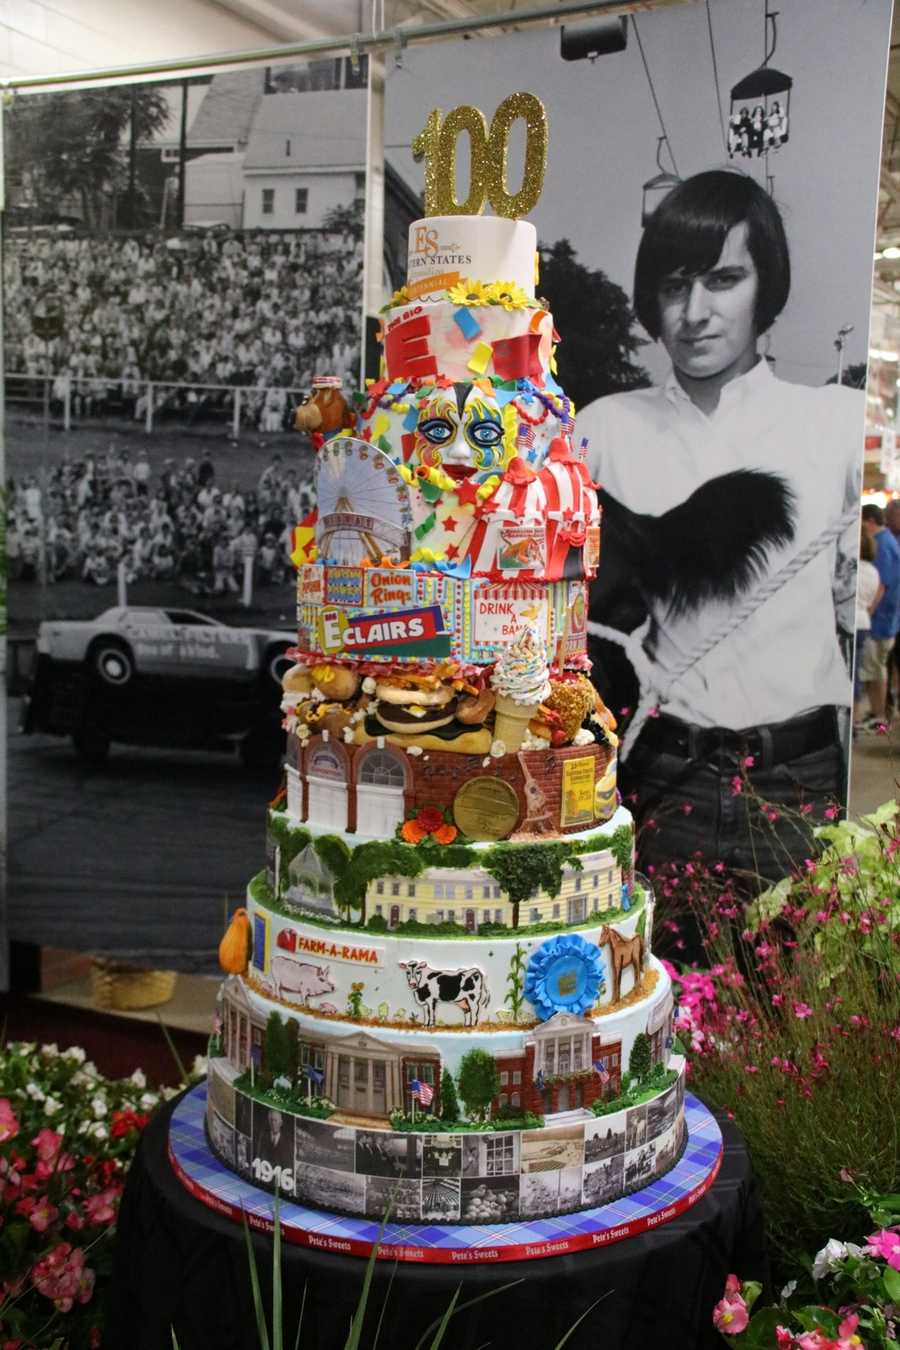 With more than 200 pounds of sugary sweet fondant, the birthday cake sculpture is not edible inside.